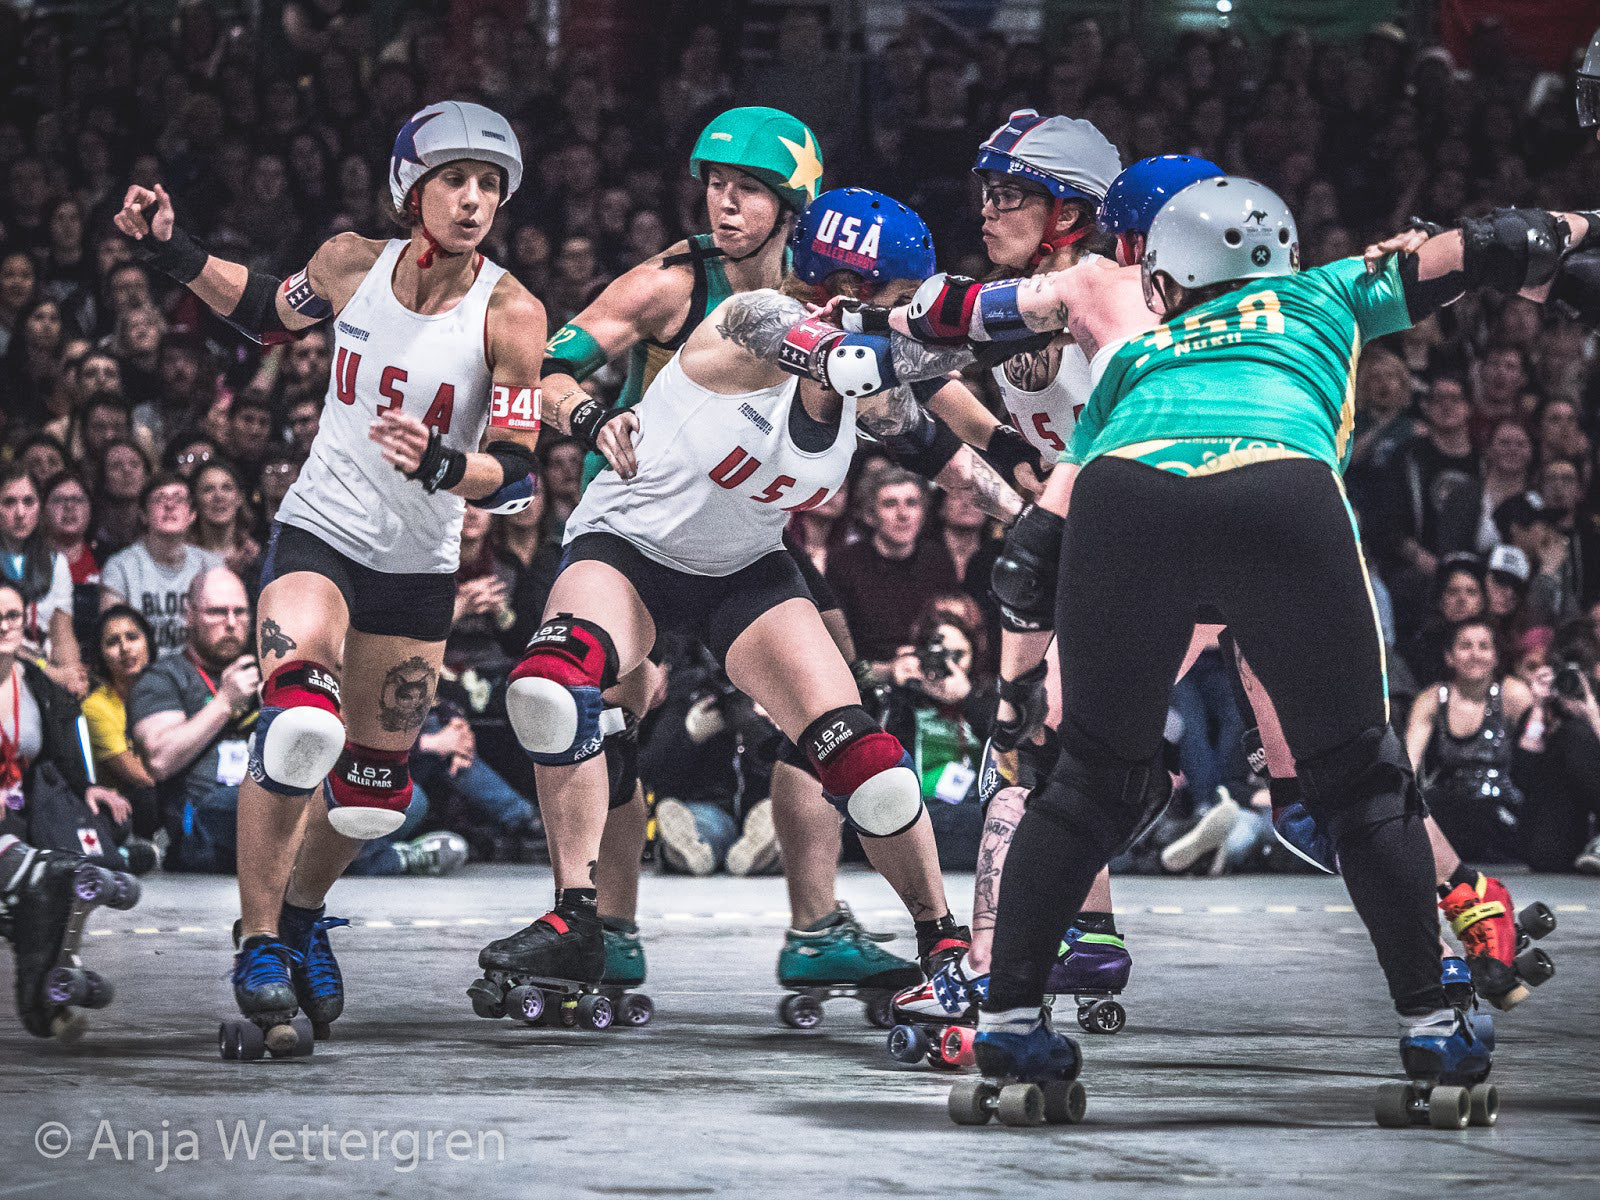 An older edit from Anja with high contrast, grittiness & drama added through high gradation. If you take a closer look at Australia's jammer Jambi's upper arm you can almost feel the power, strength and concentrated movement caught in the image. Team USA vs. Team Australia during the Roller Derby World Cup 2018 in Manchester, UK. ©Anja Wettergren